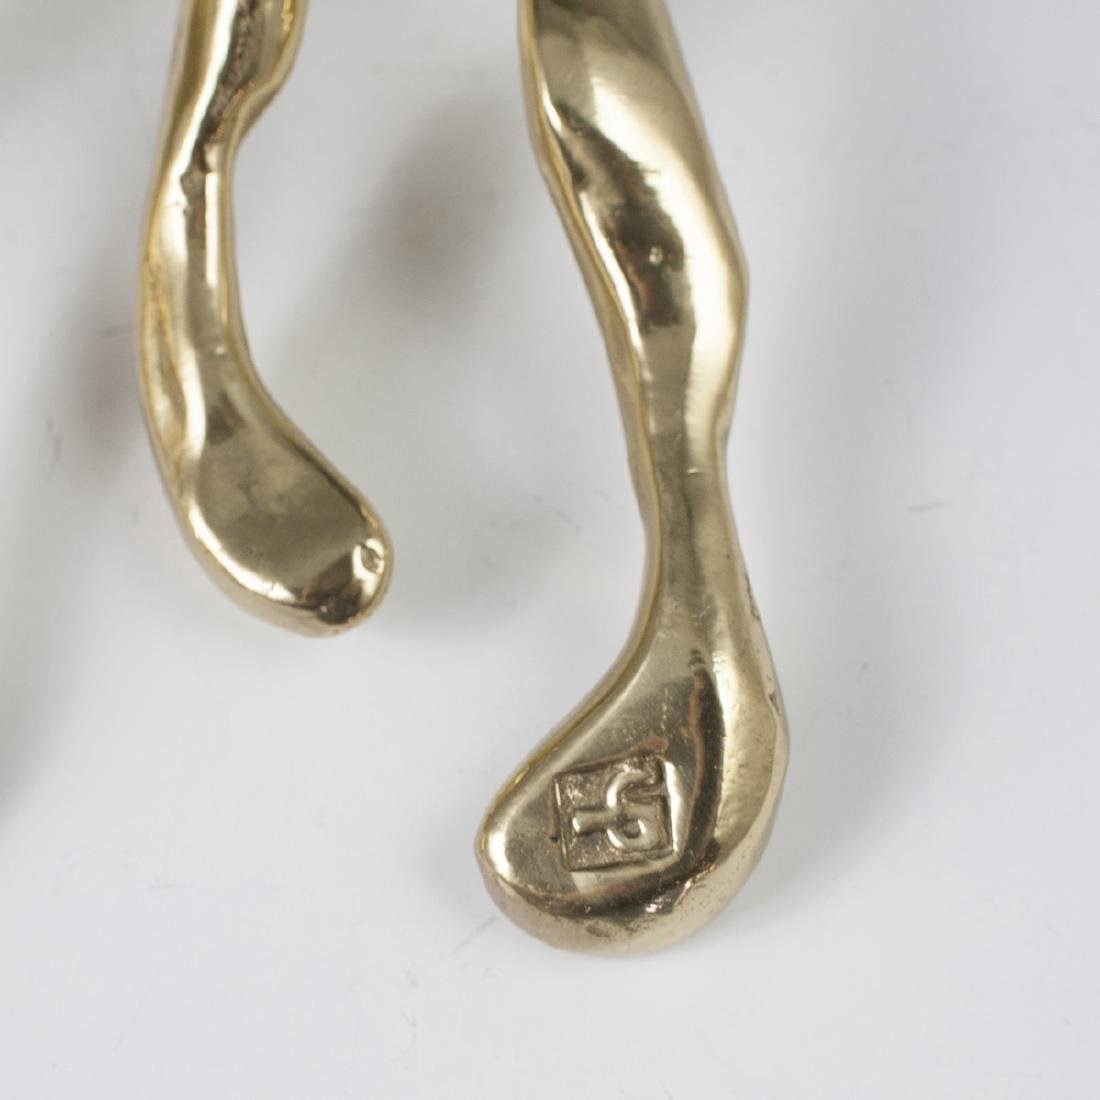 David Marshall Brass Towel Hangers - 2